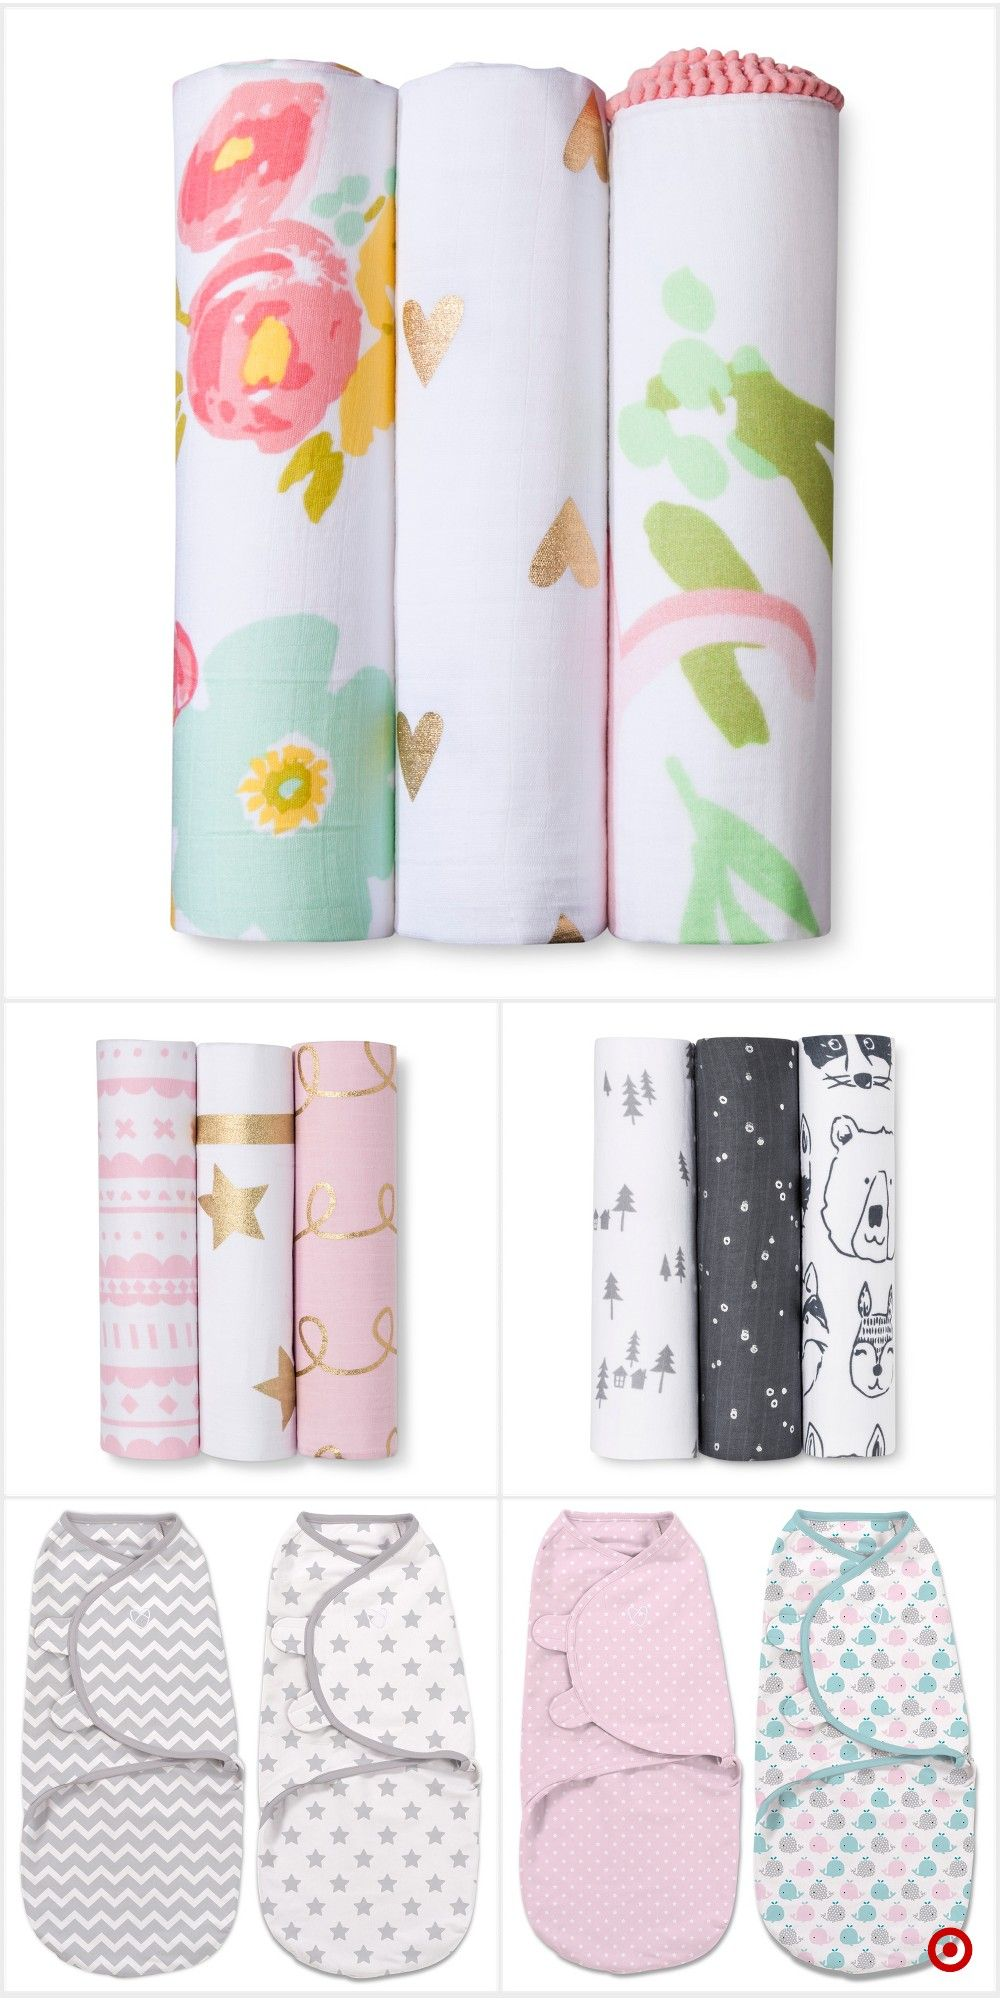 Swaddle Blankets Target Prepossessing Shop Target For Swaddle Blanket You Will Love At Great Low Prices Inspiration